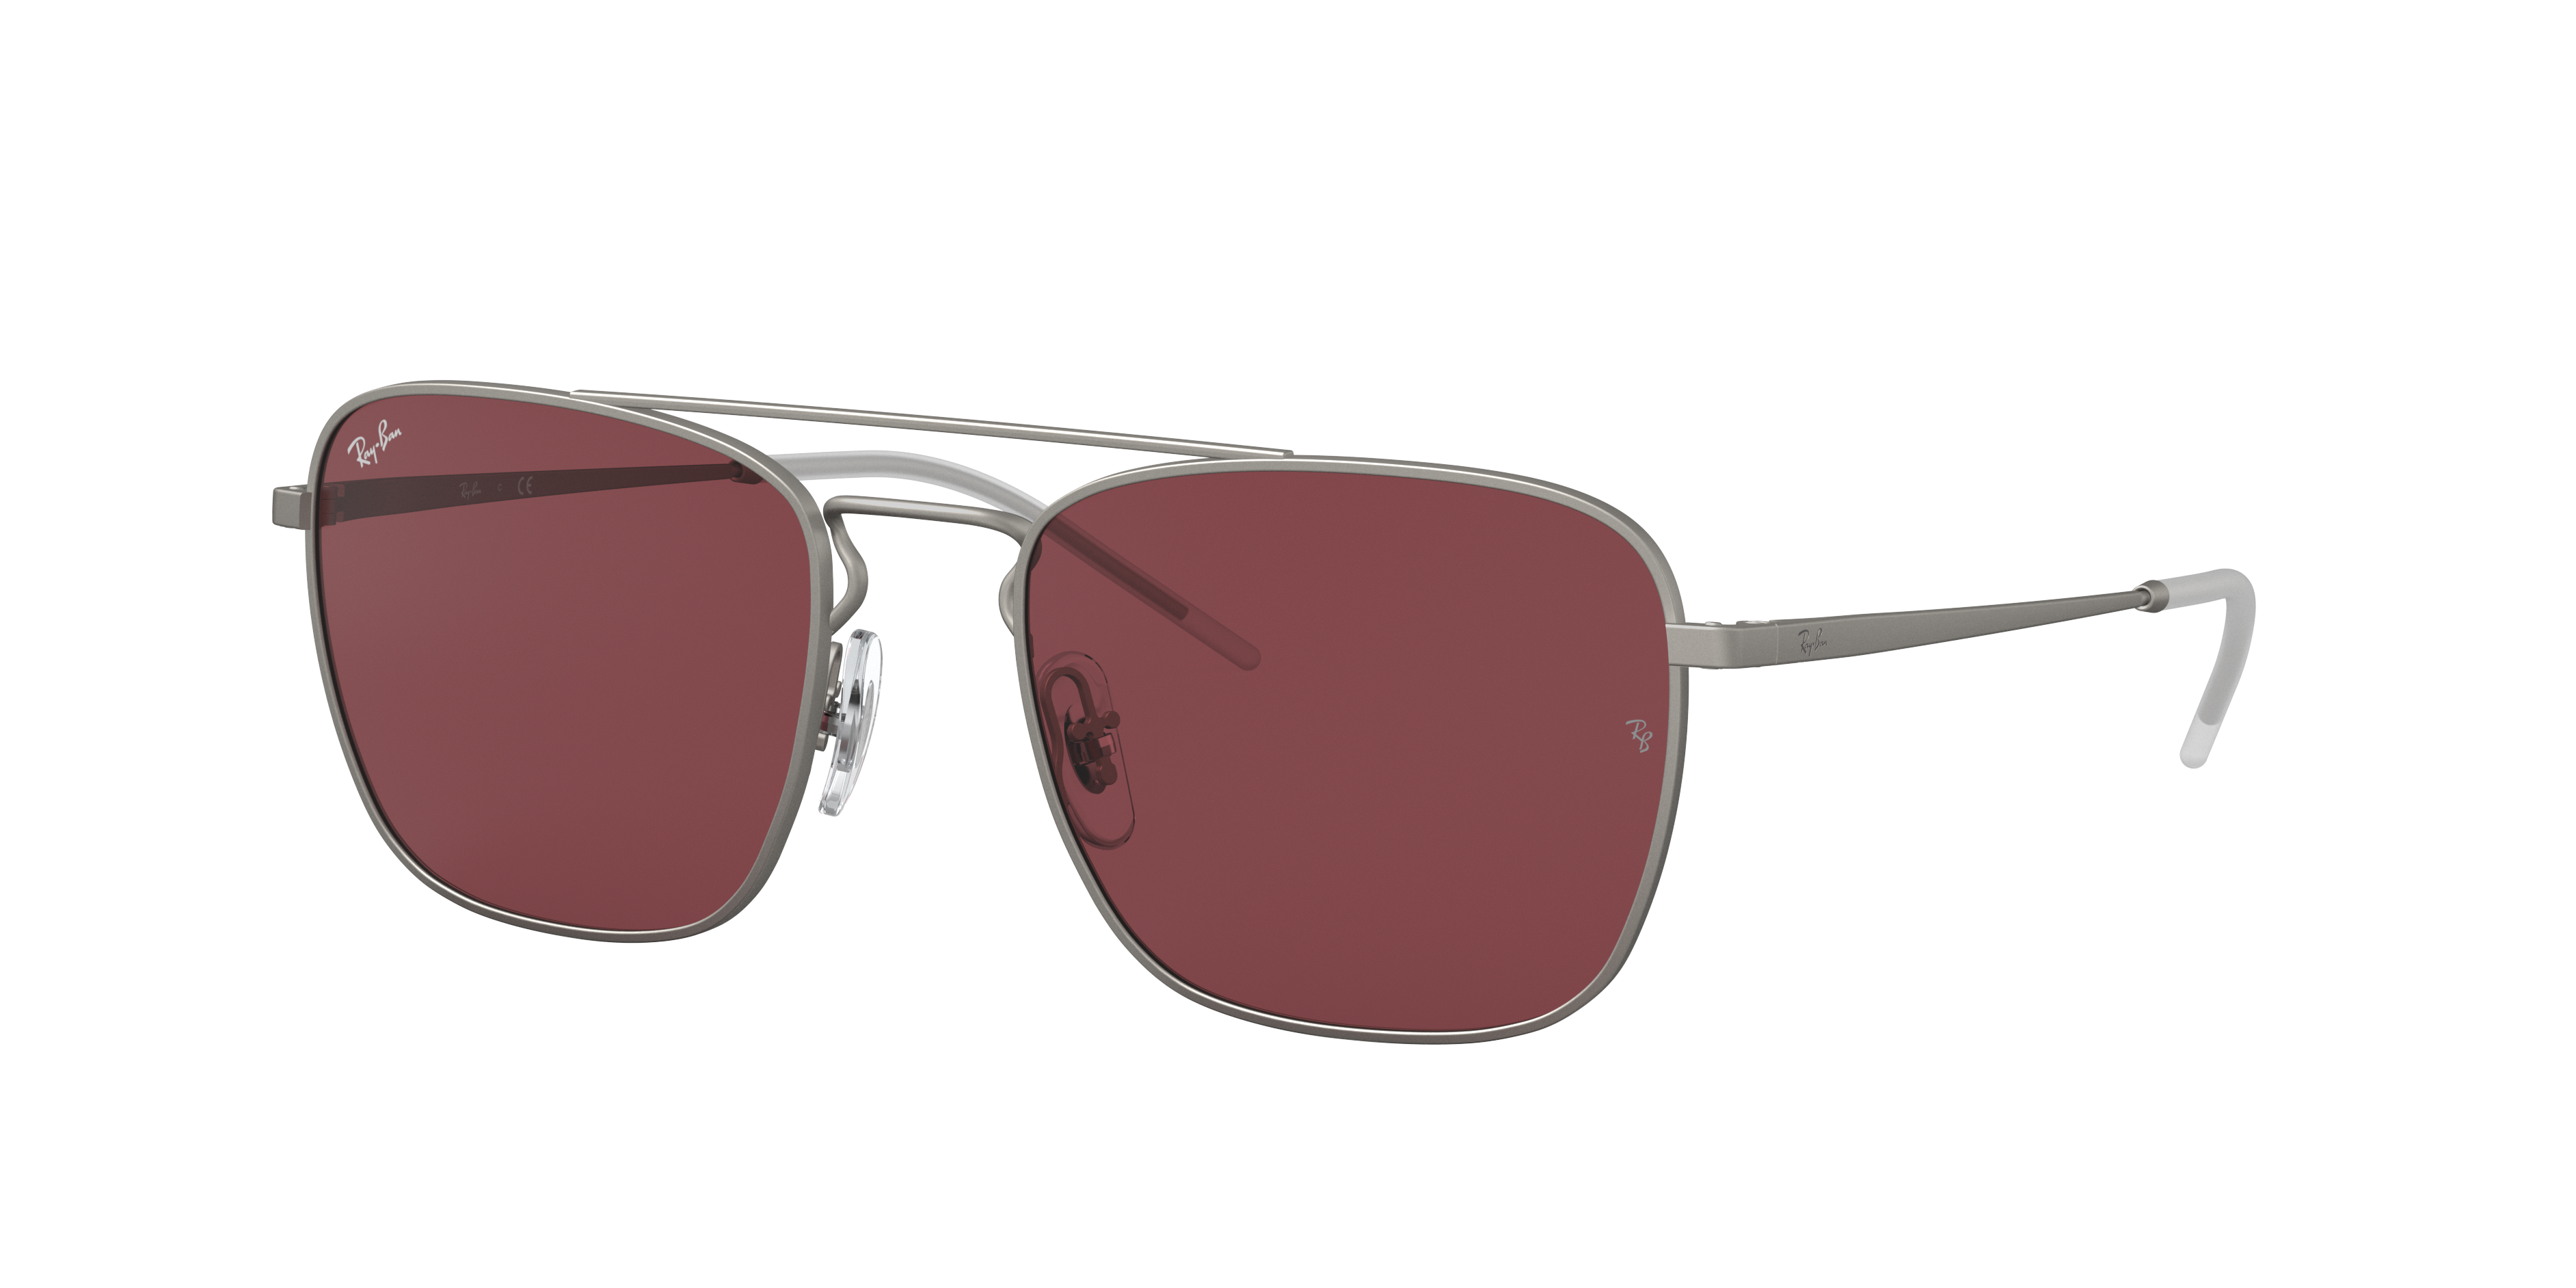 Ray-Ban Rb3588 Silver, Violet Lenses - RB3588